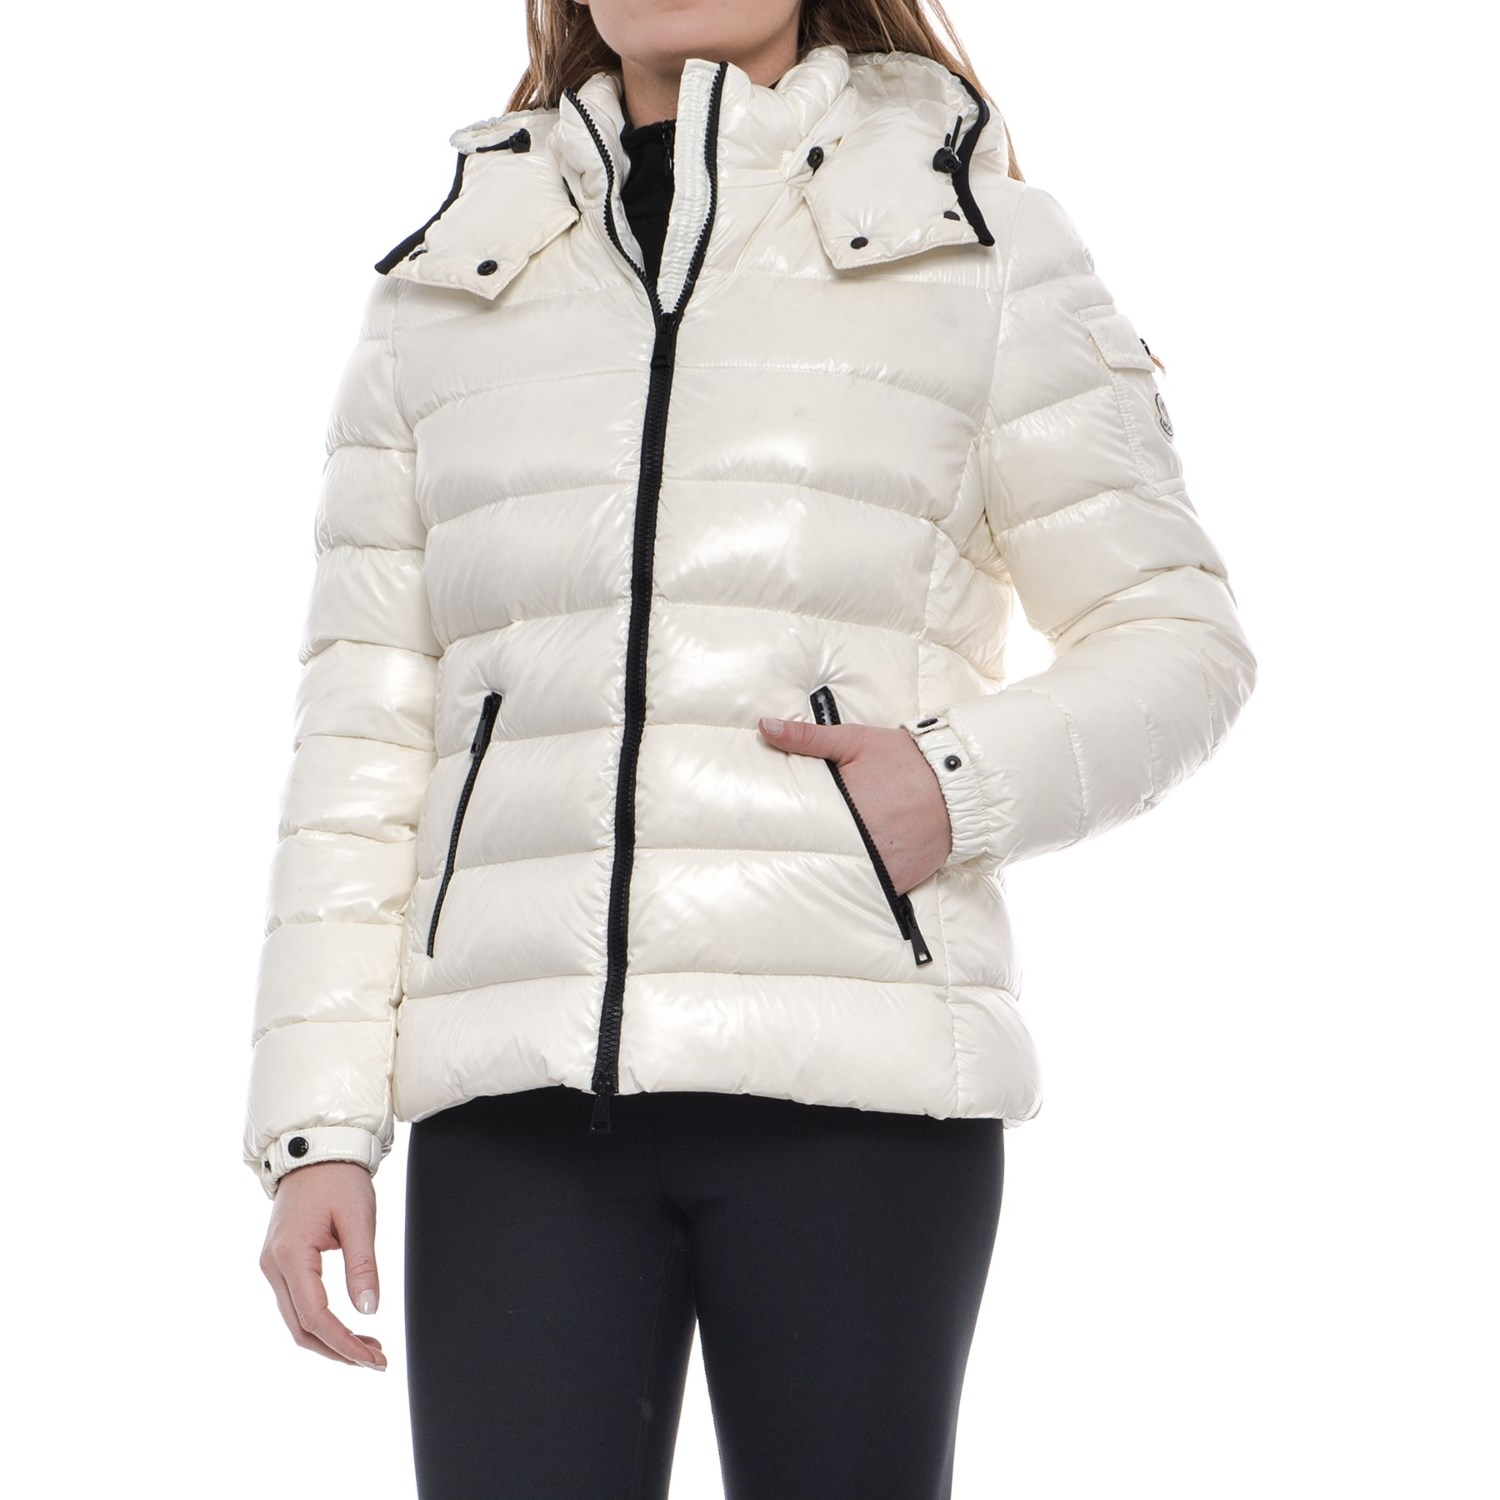 4c47bf337 top quality womens moncler jackets sale quebec quebec 9fafe 3f72c